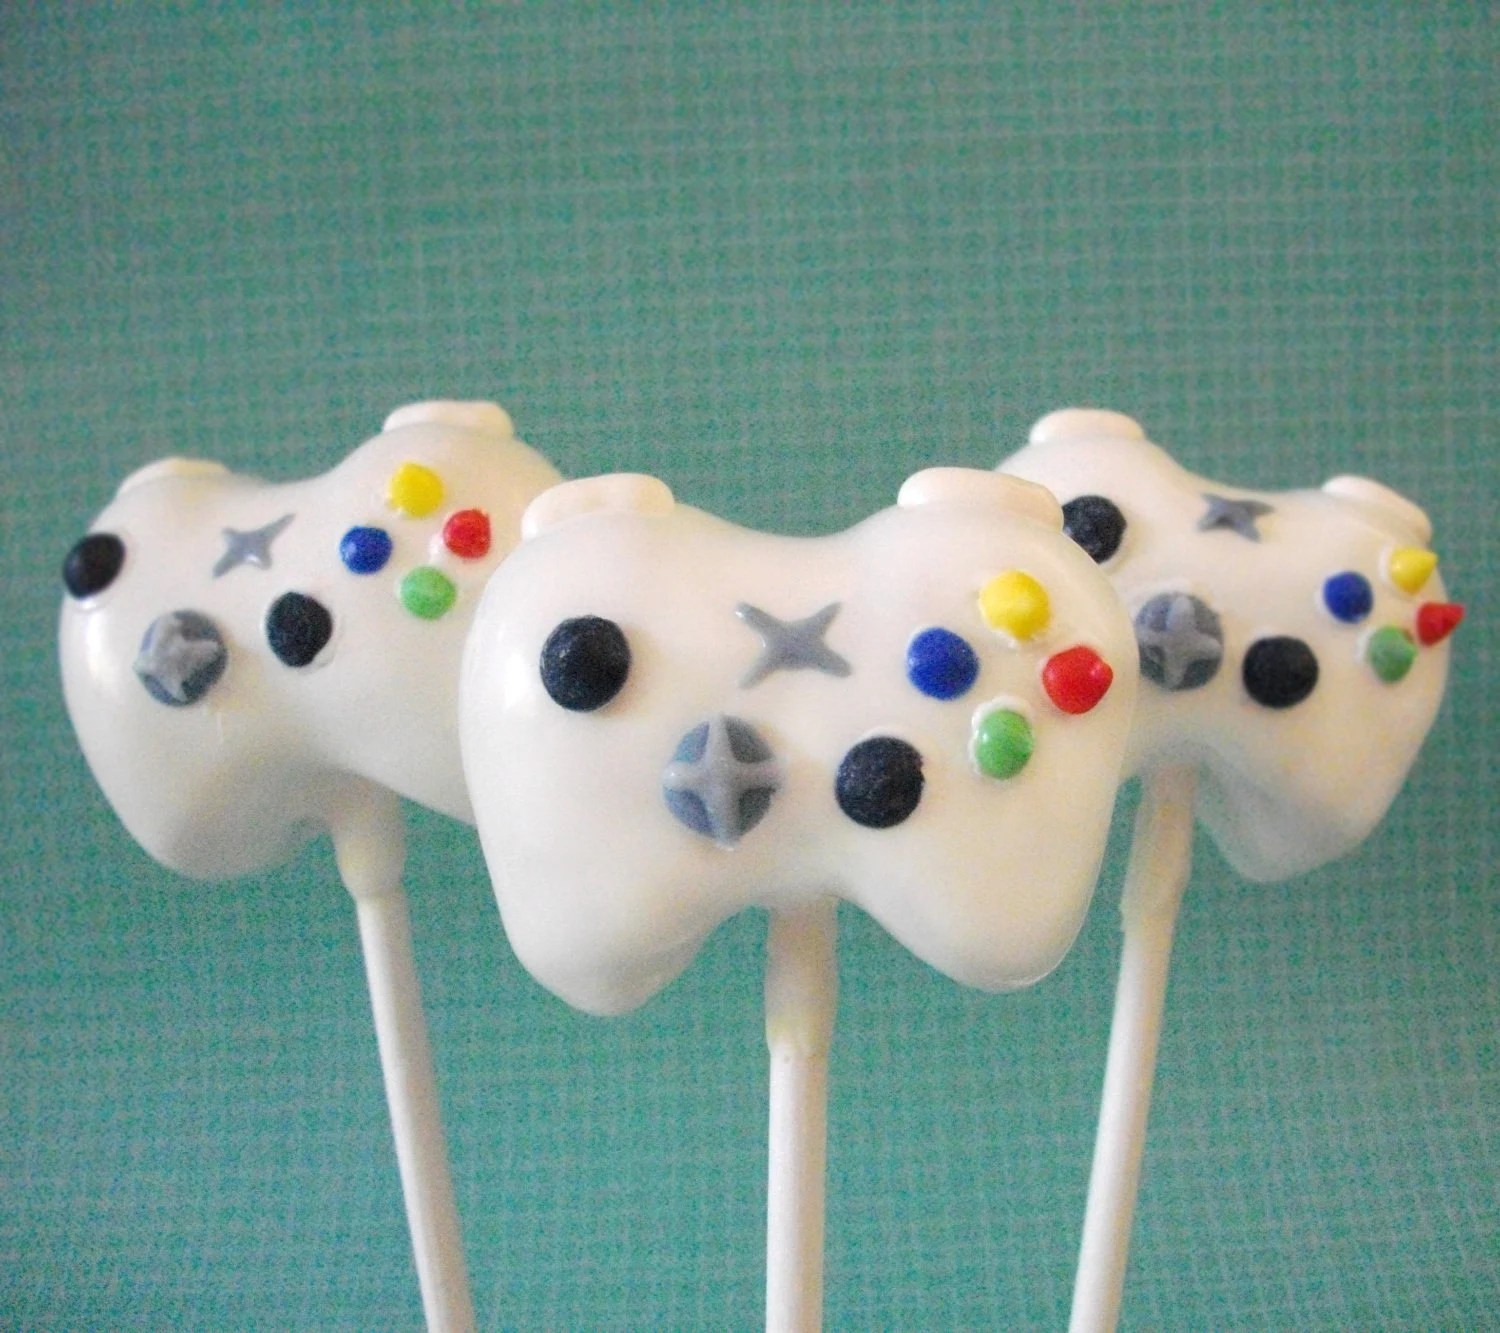 Cake Pop And Cake Ball Ideas Xbox 360 Cake Pops